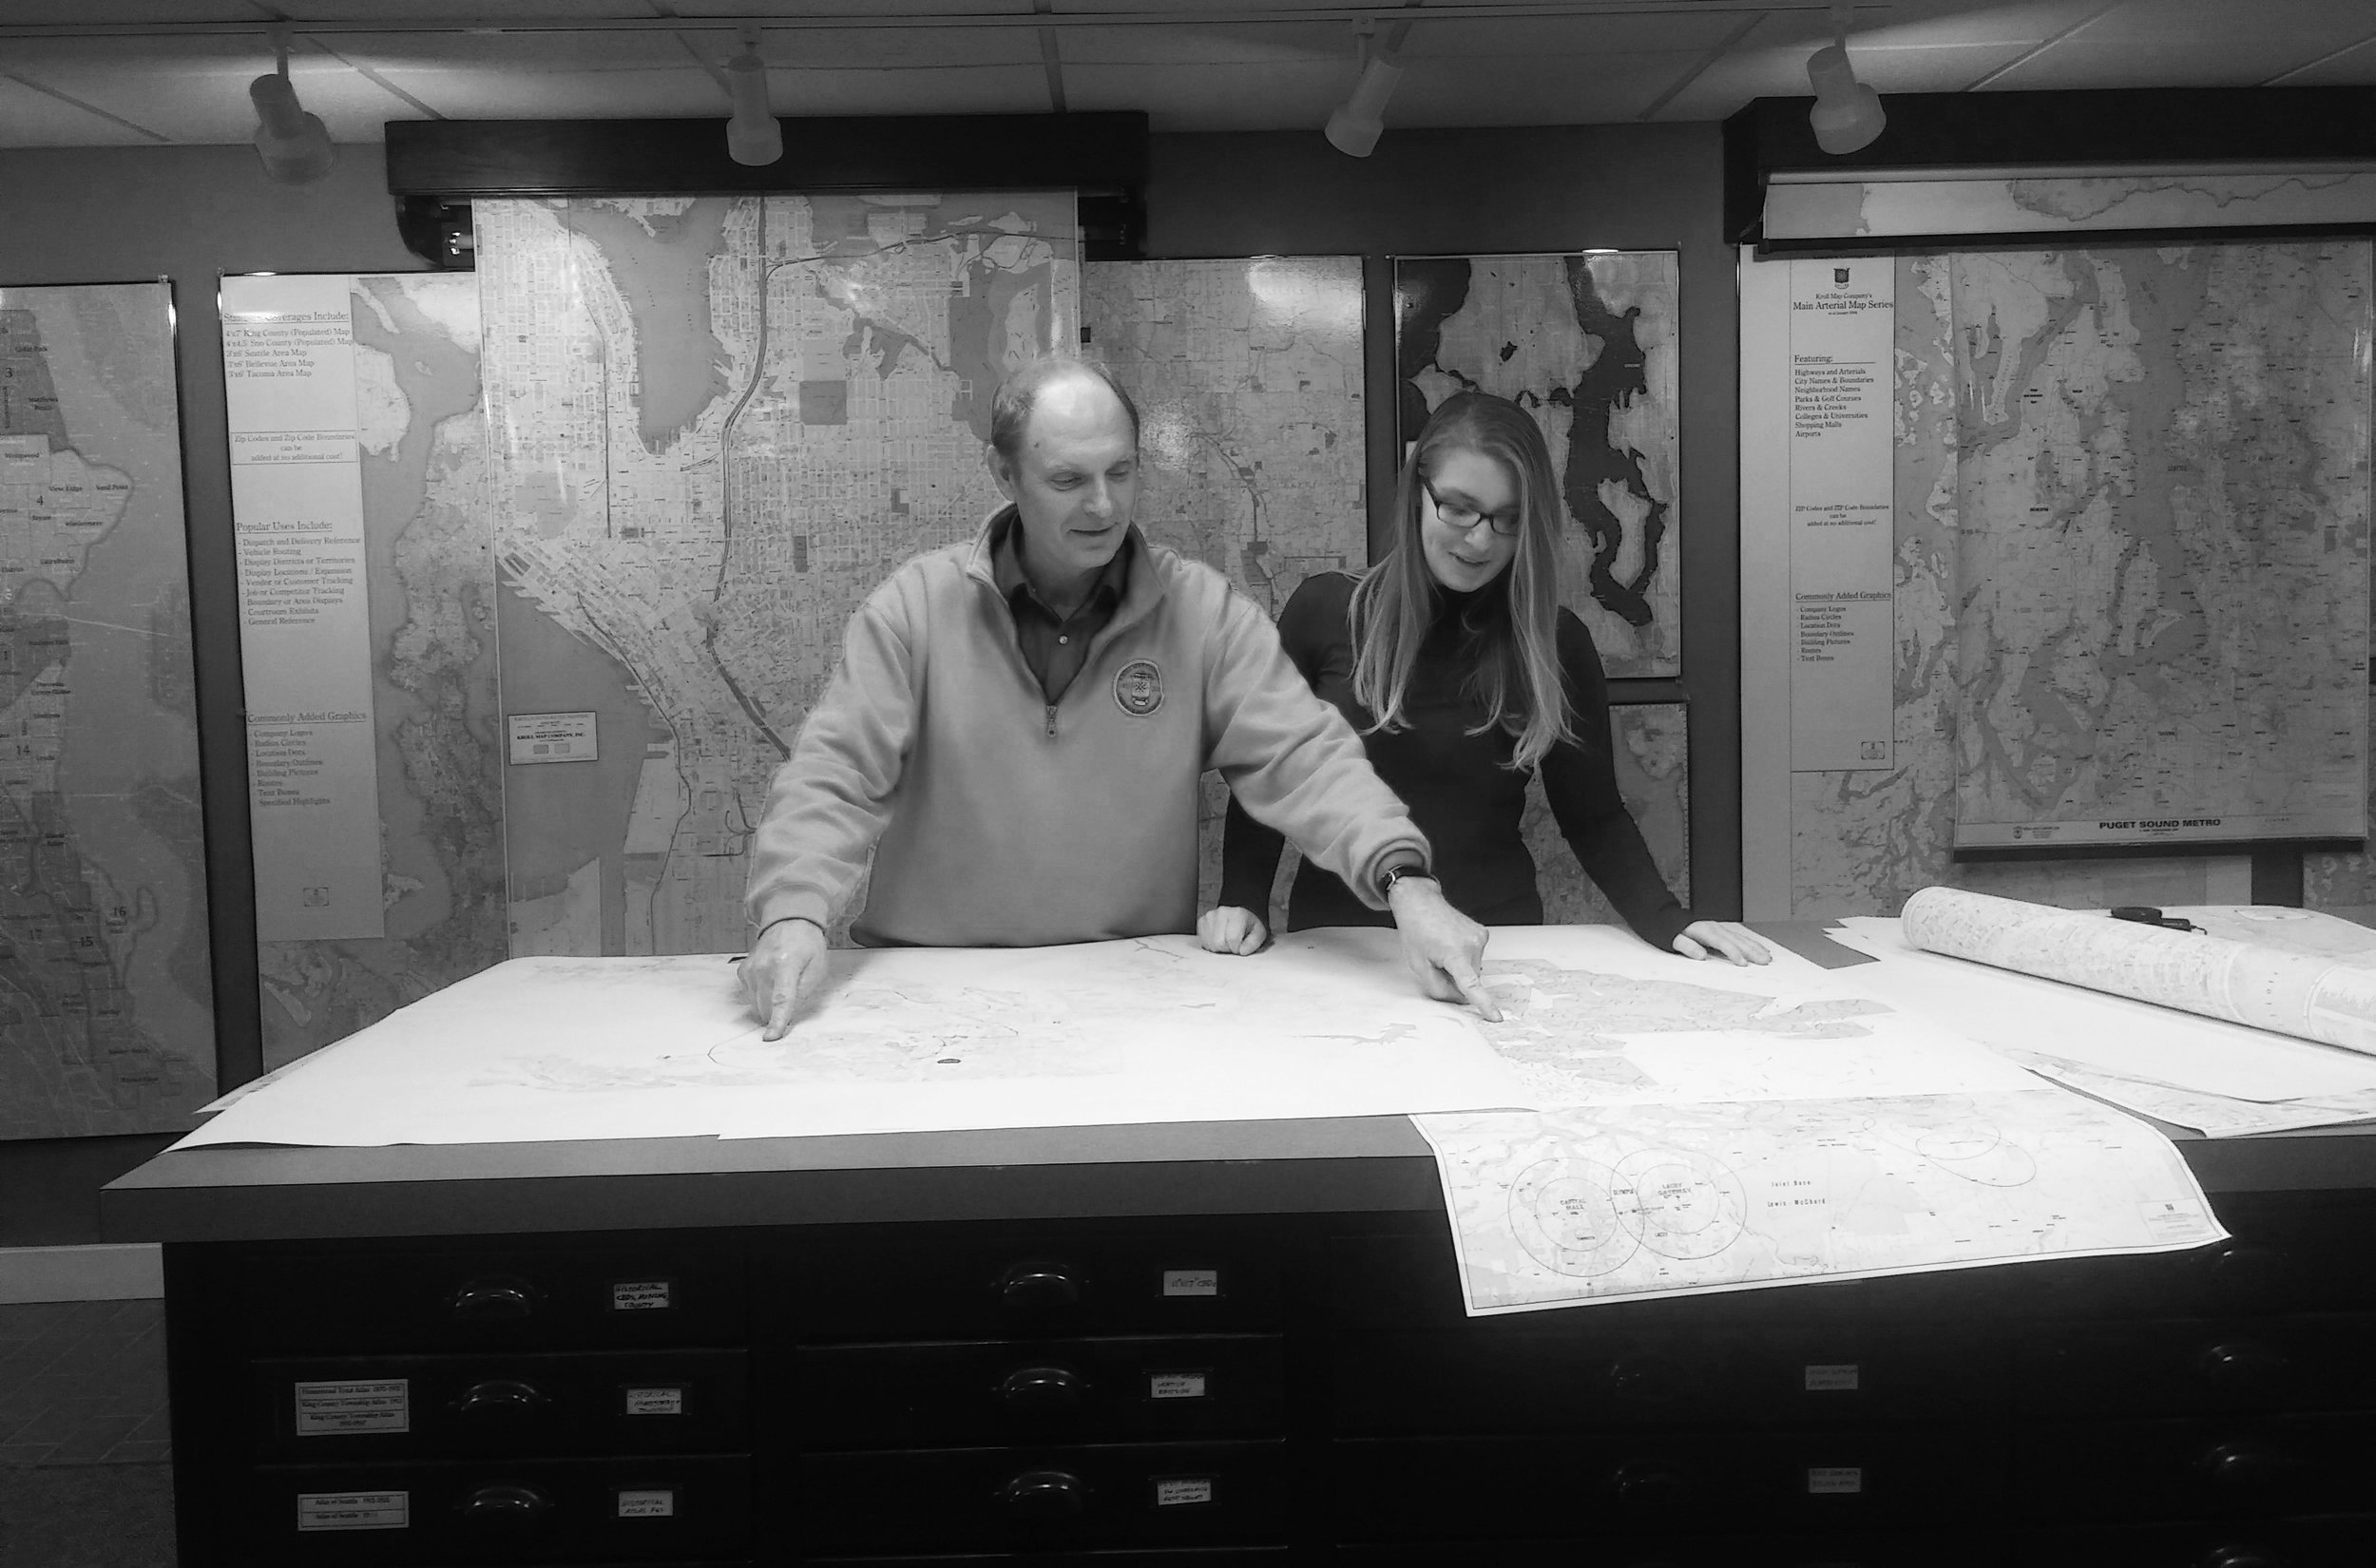 The flat files in the back of the store with every map imaginable.